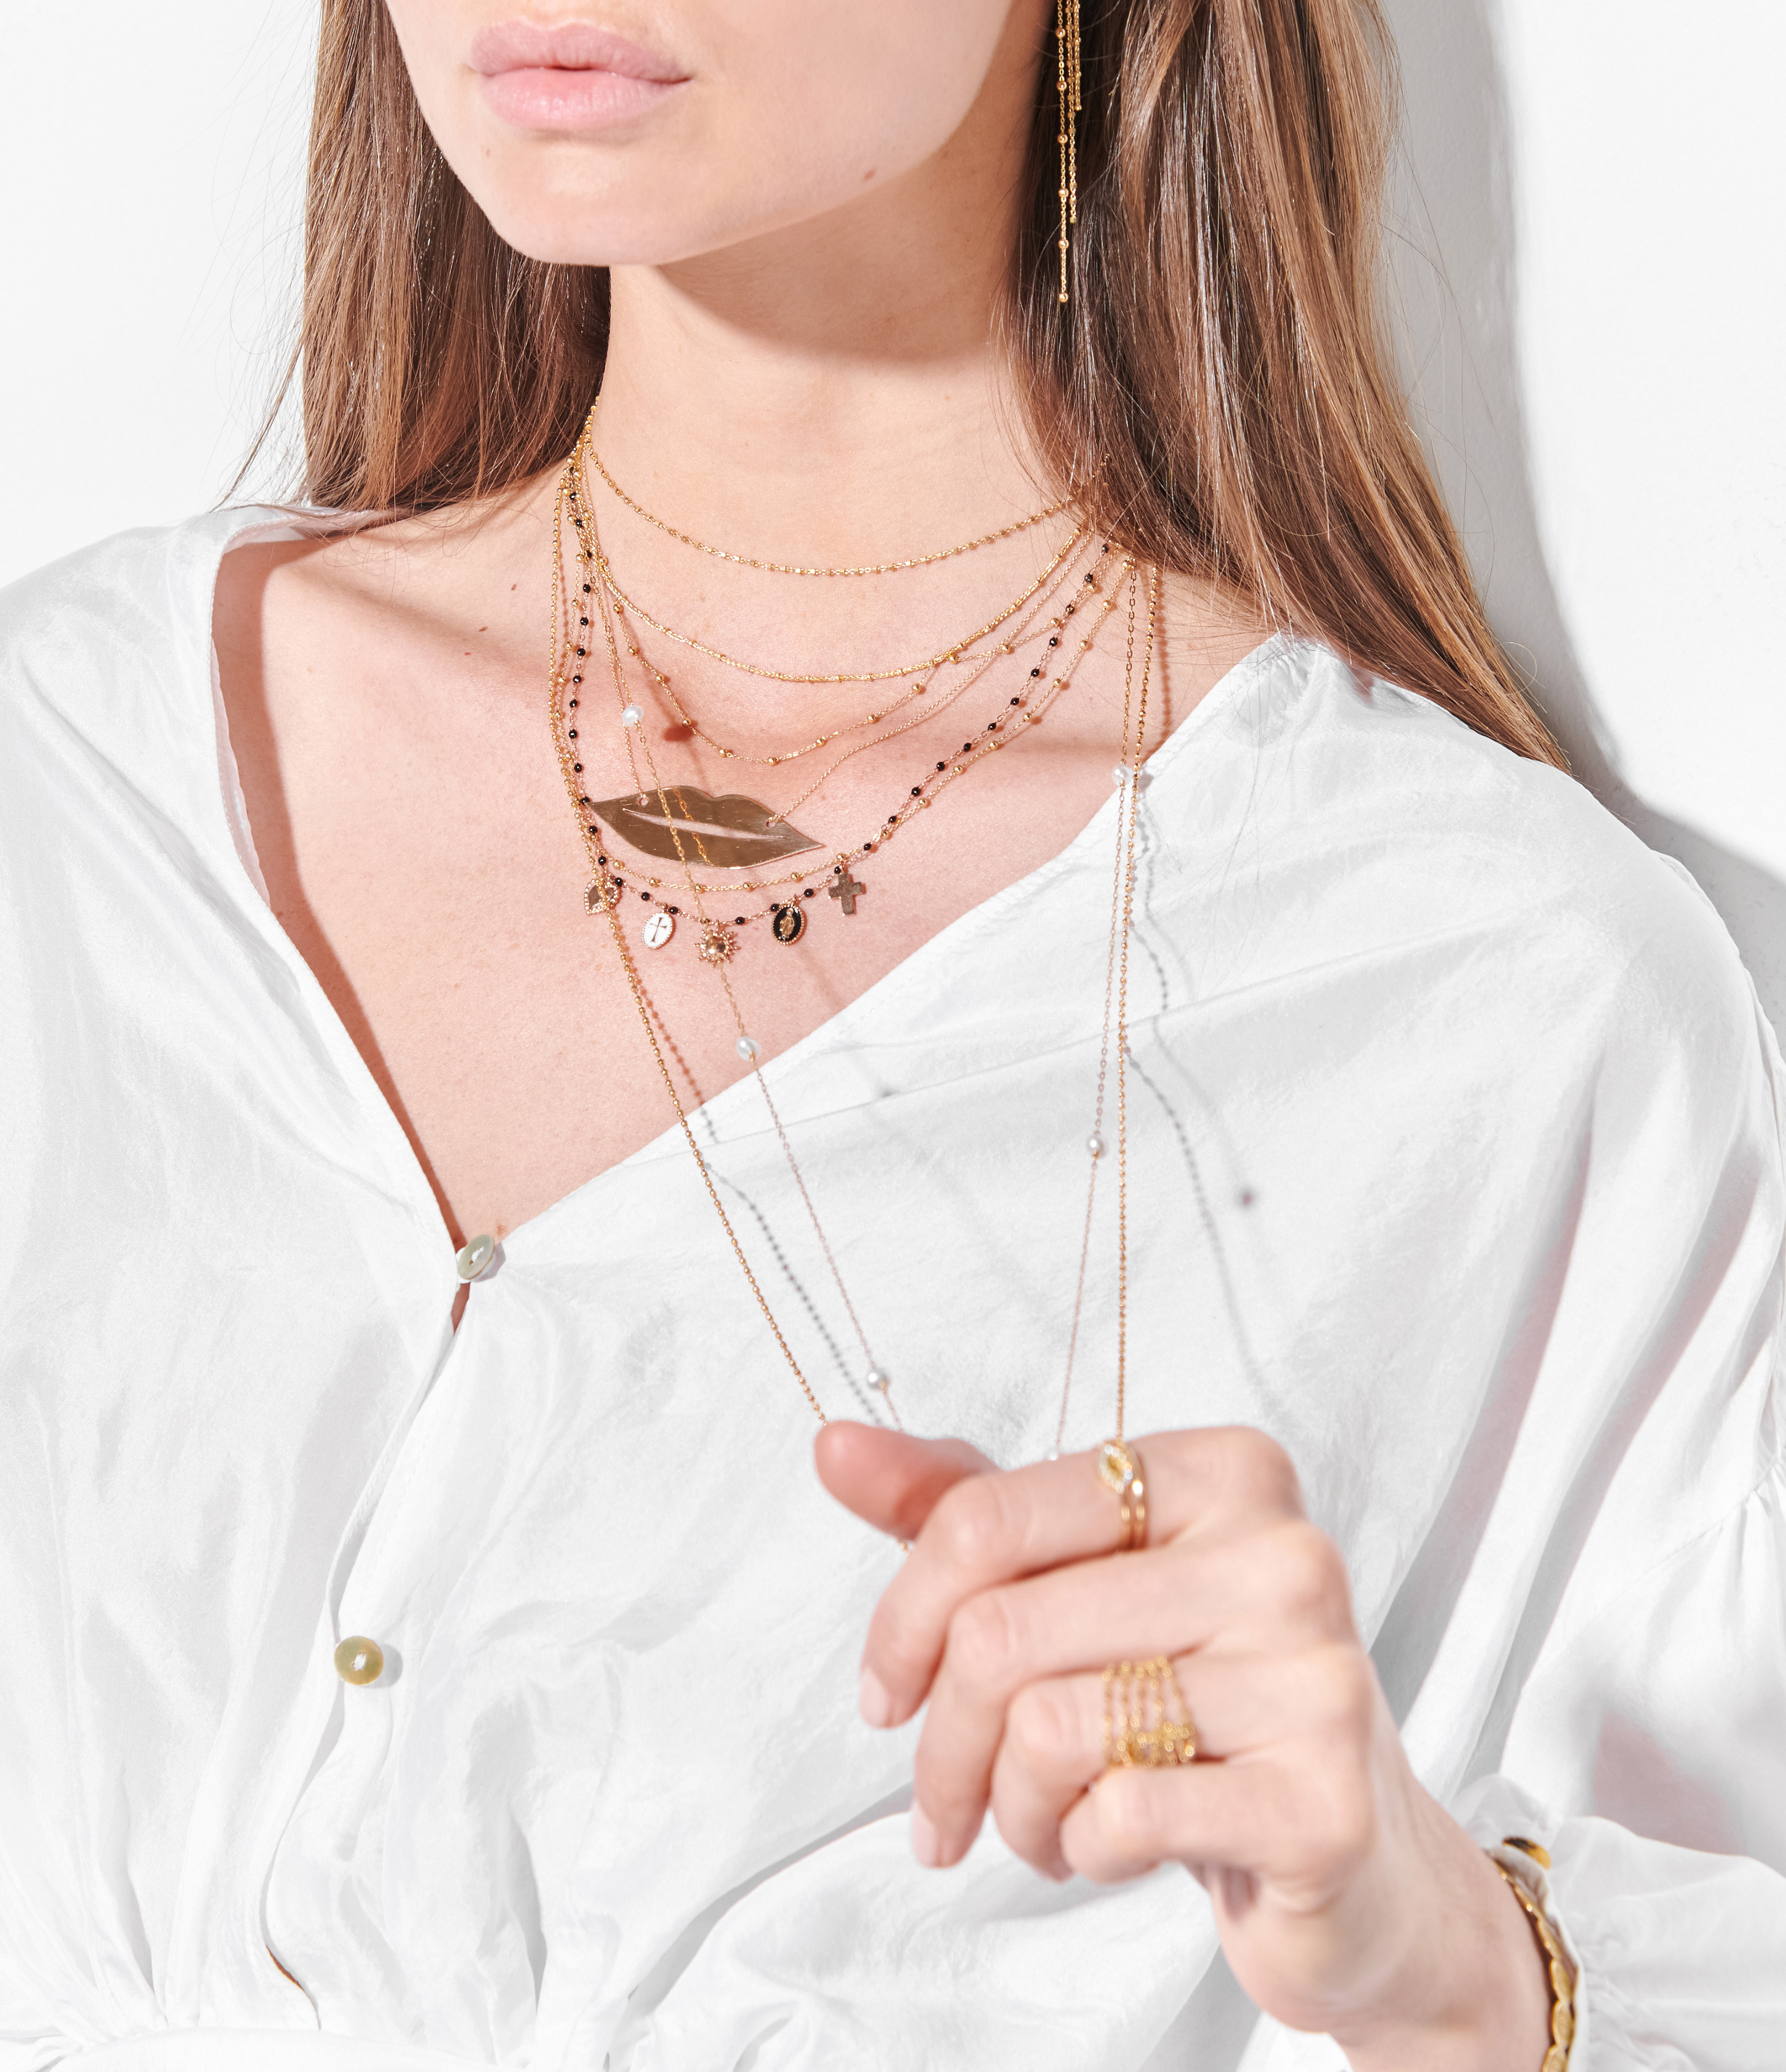 GINETTE NY - Collier French Kiss JumBoucle d'oreille Or Rose